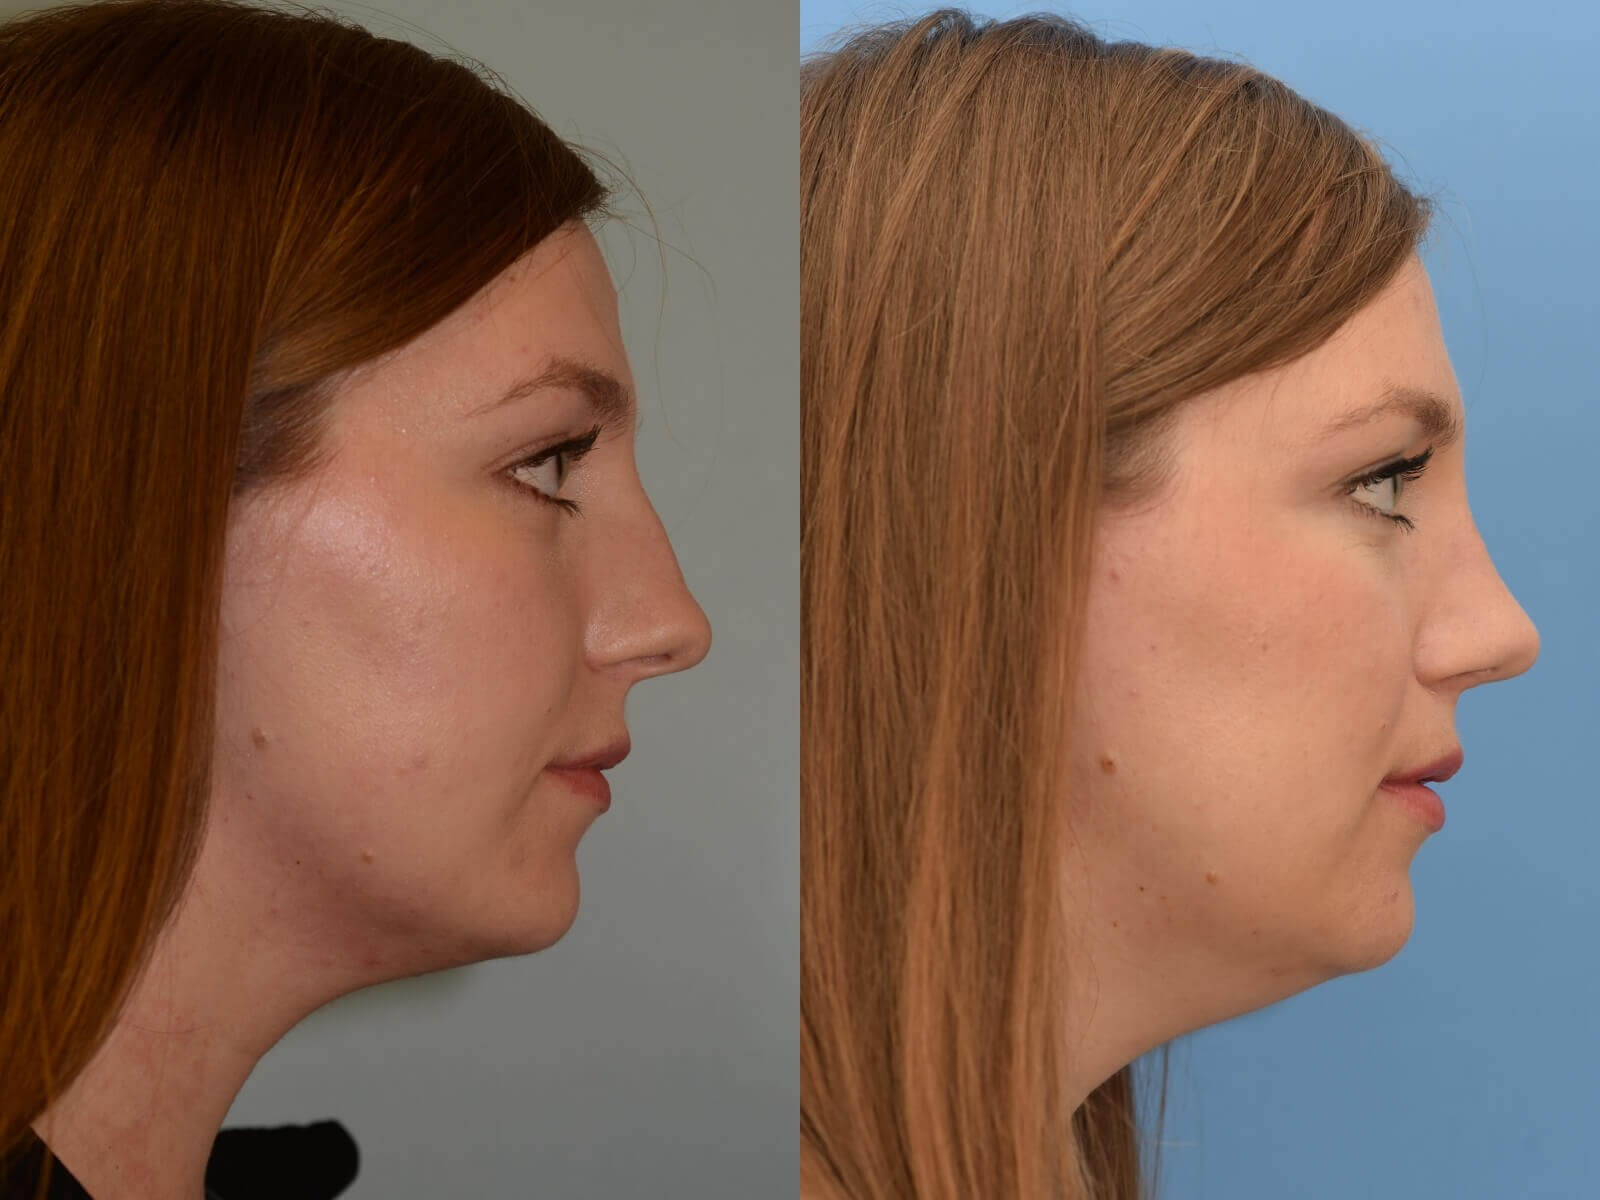 Septorhinoplasty Before and After